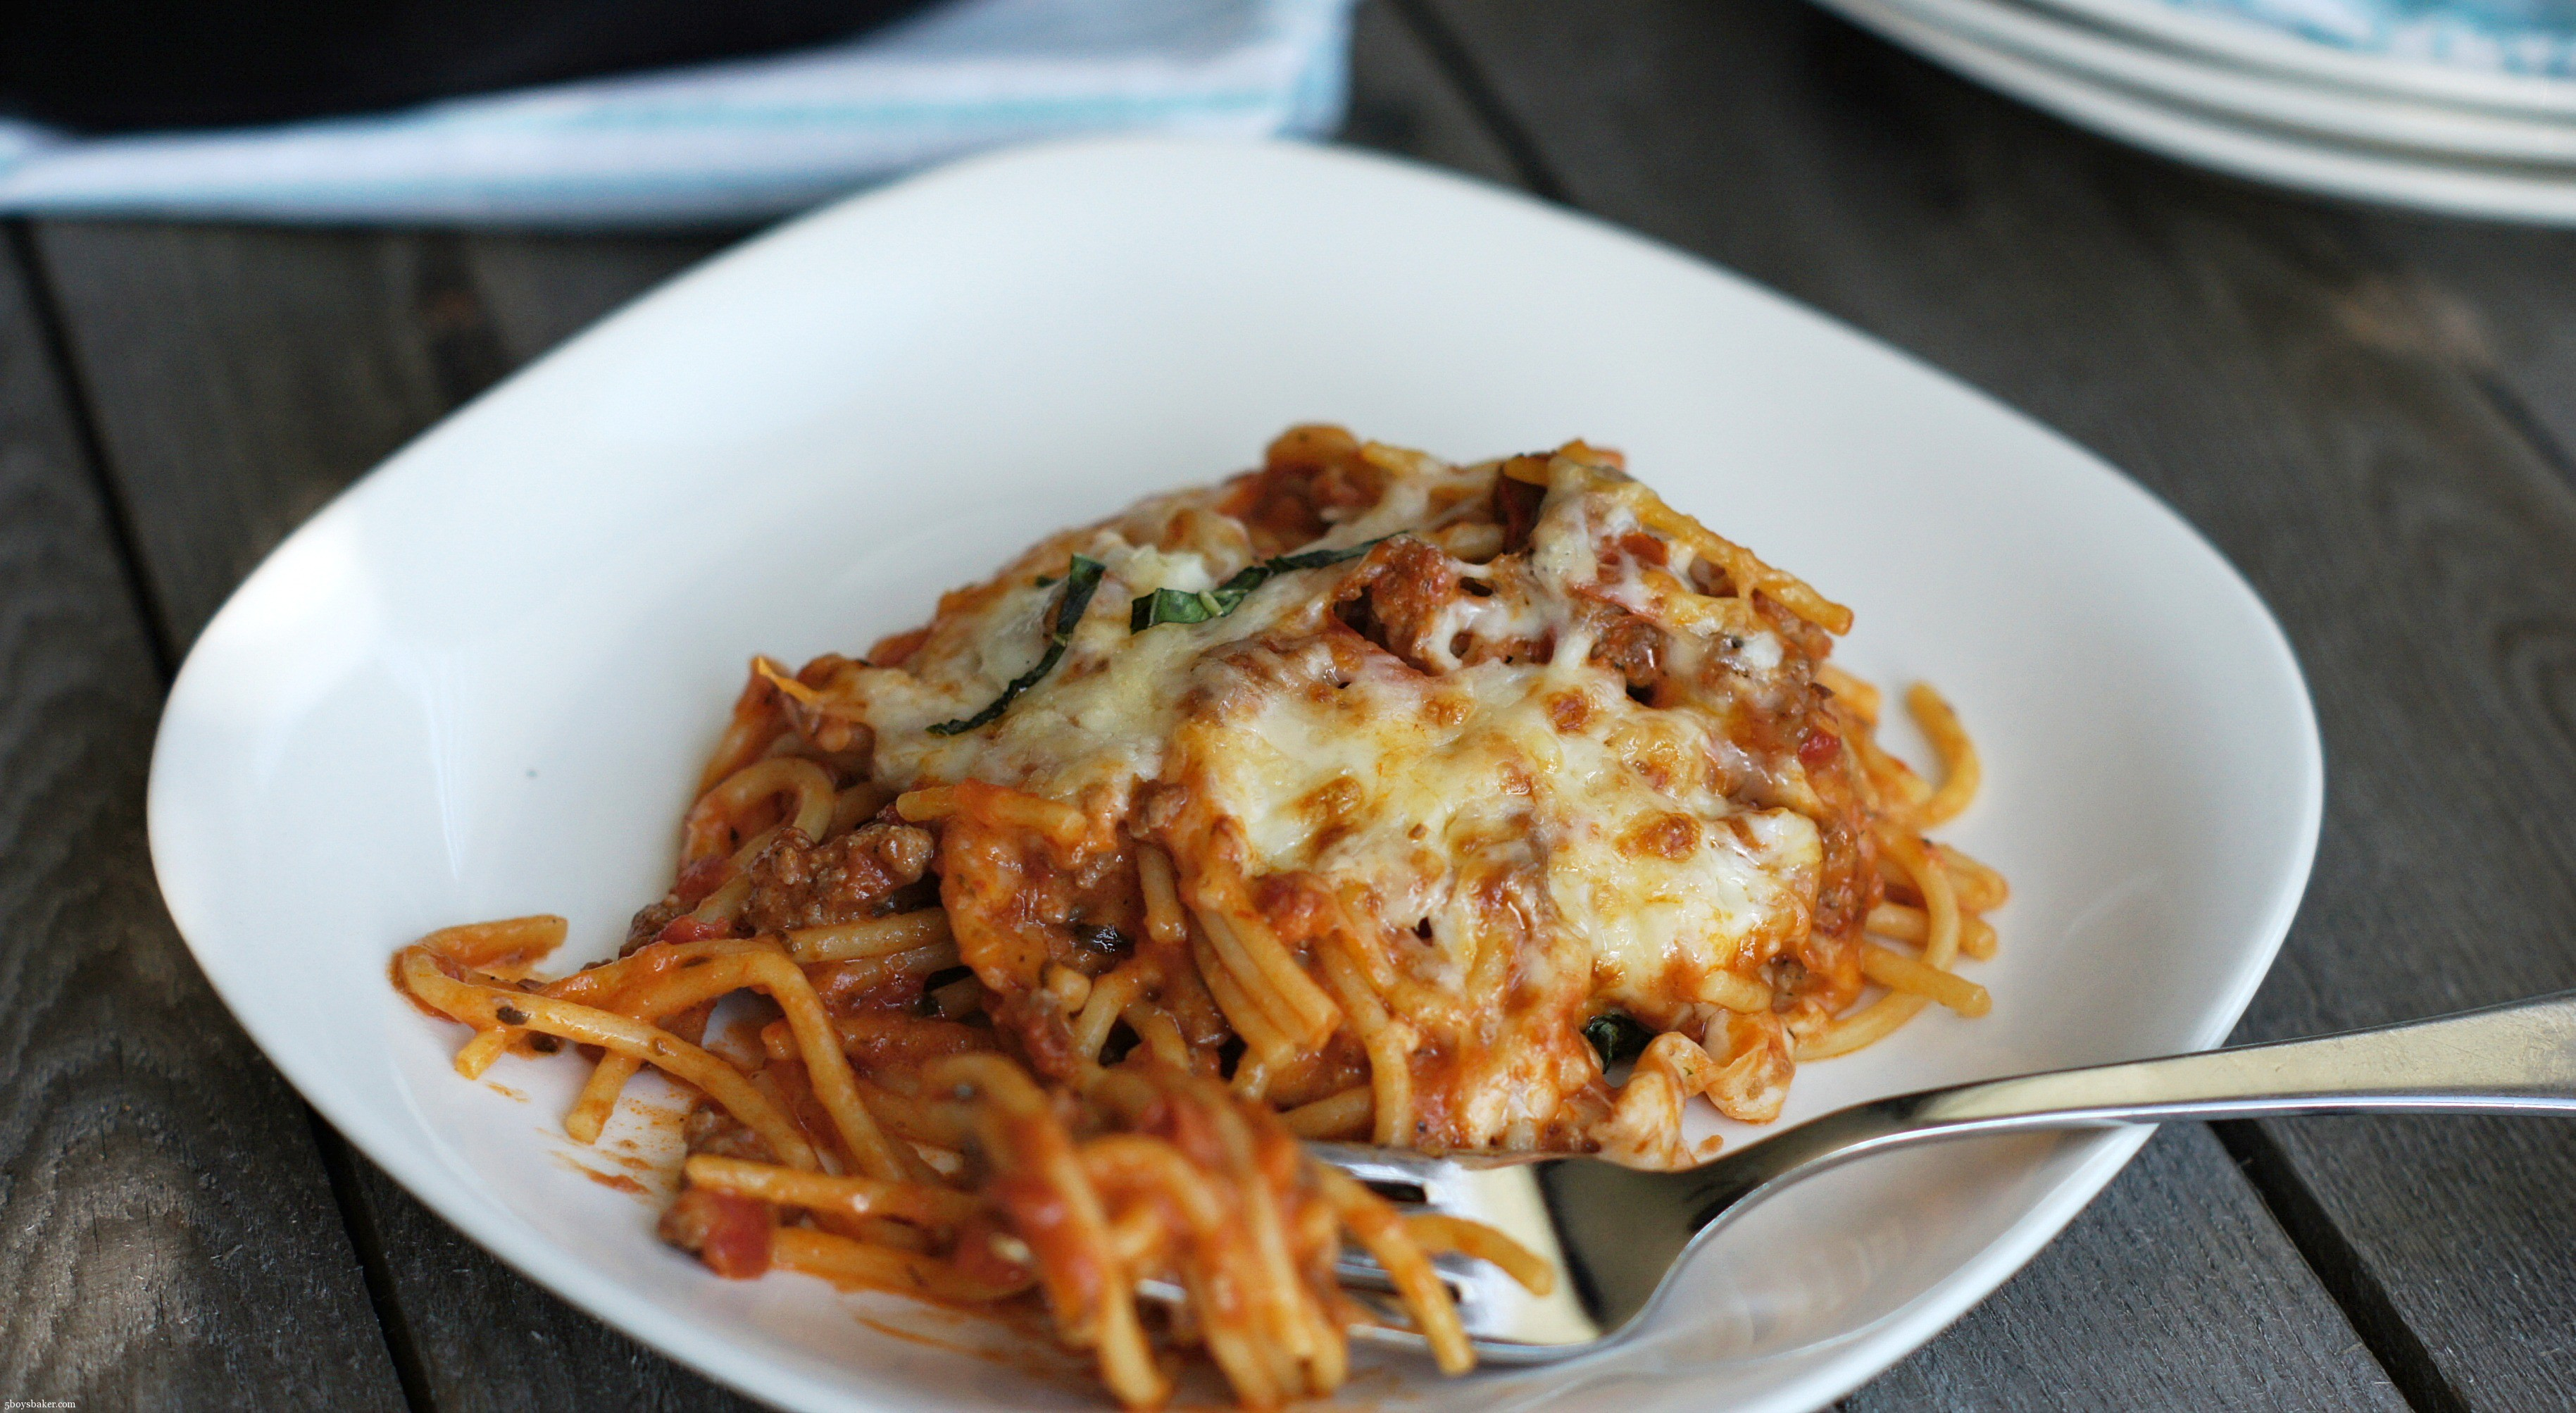 This Skillet Baked Spaghetti Is As Simple As It Sounds It Comes Together Start To Finish In About 25 Minutes The Spaghetti And Meat Sauce Are Topped With